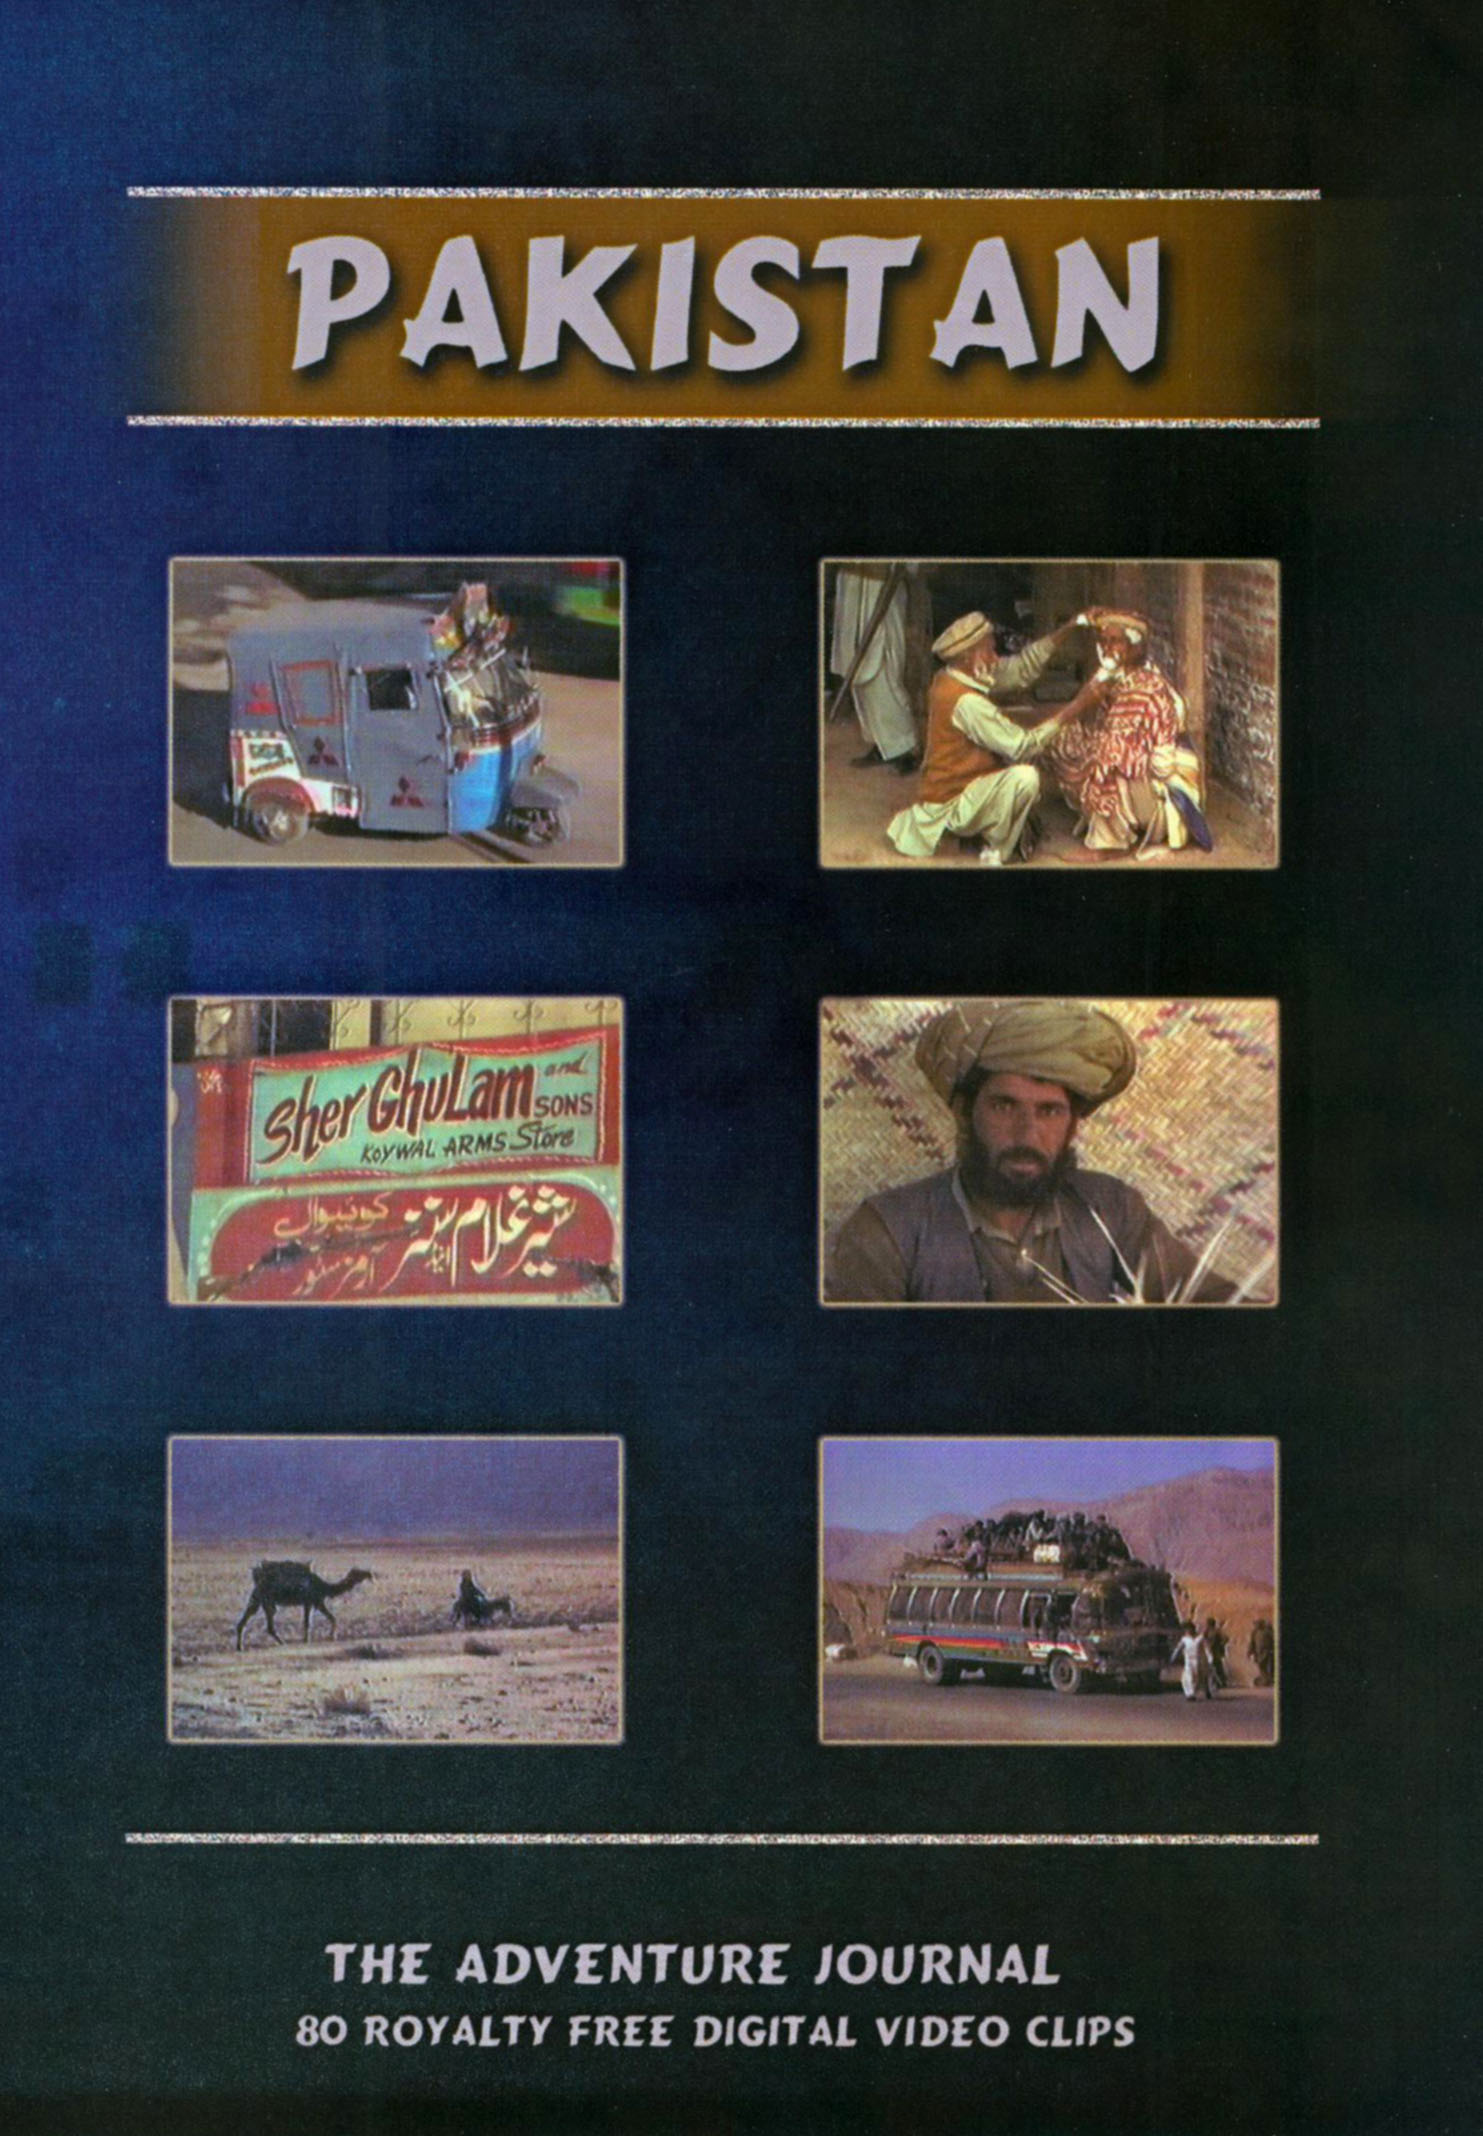 Pakistan: The Adventure Journal - 80 Royalty Free Digital Video Clips